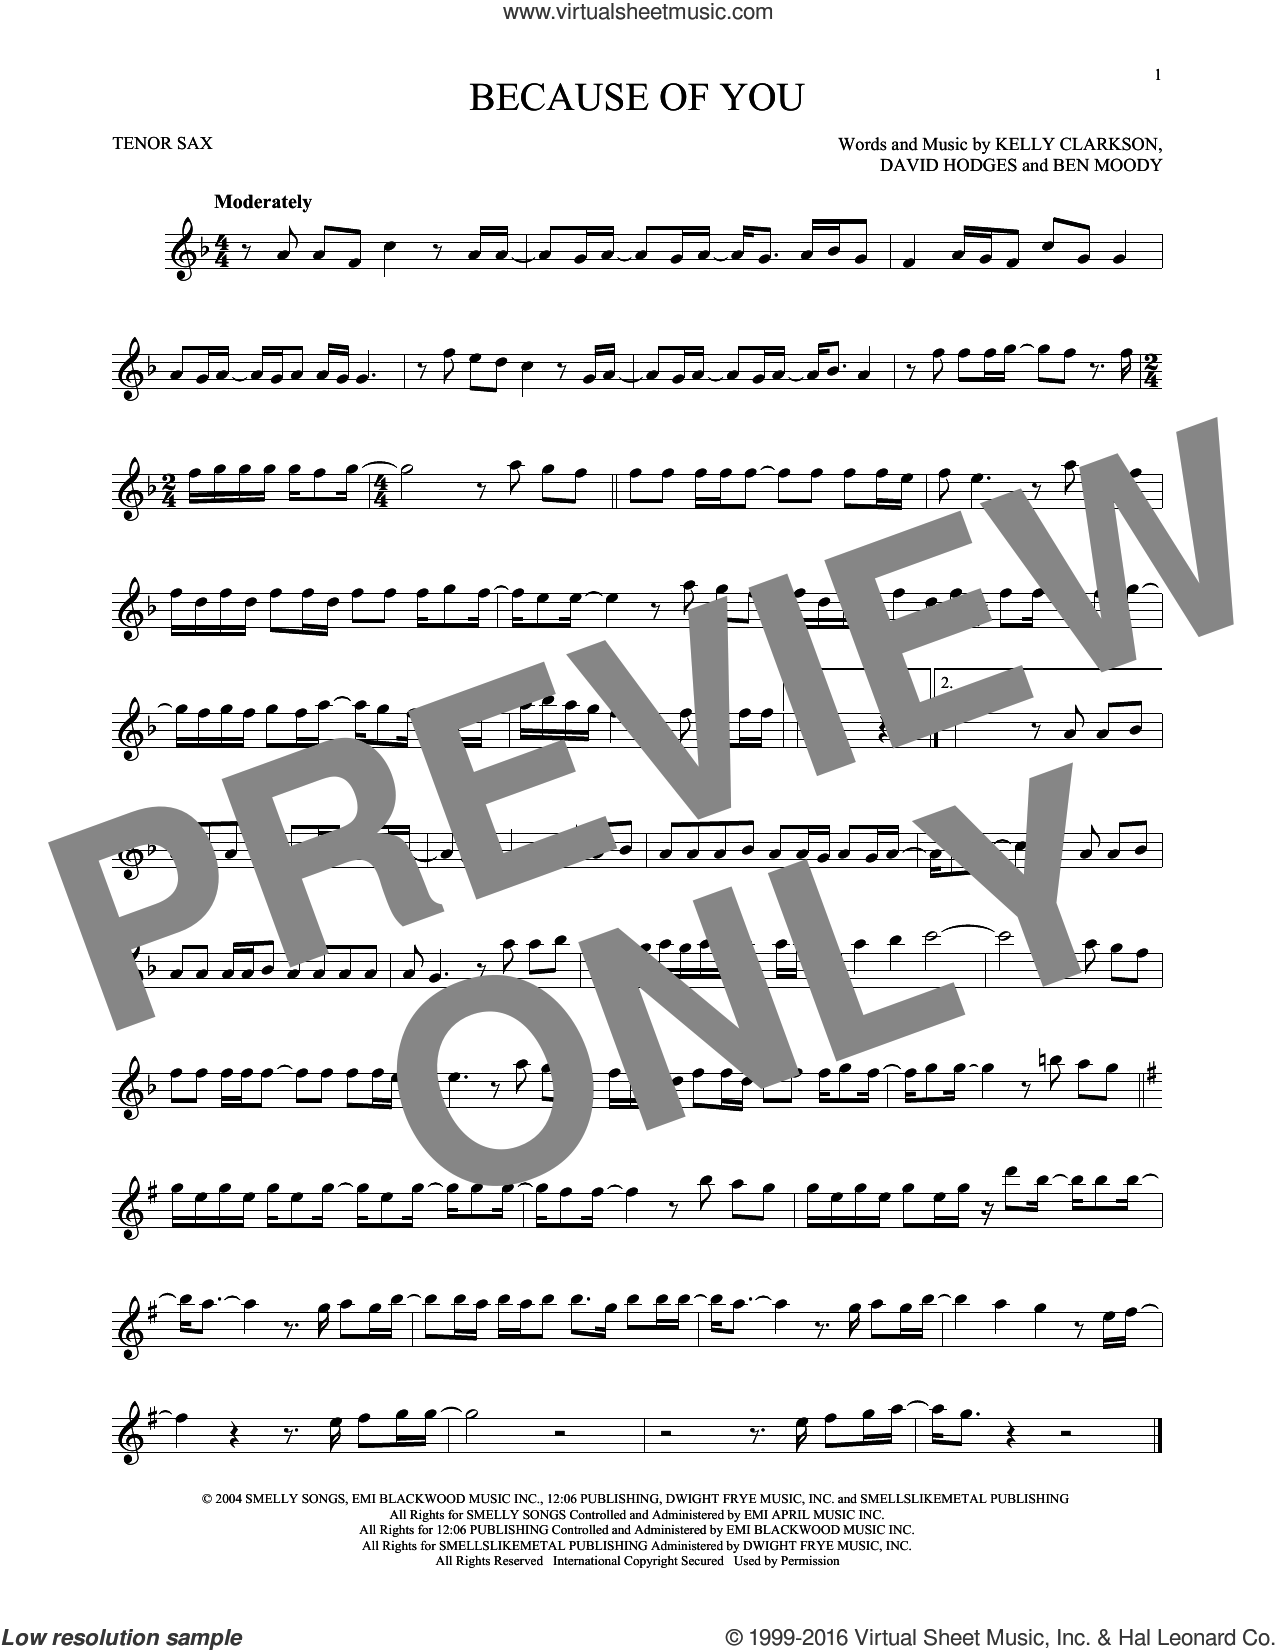 Because Of You sheet music for tenor saxophone solo by Kelly Clarkson, Ben Moody and David Hodges, intermediate skill level